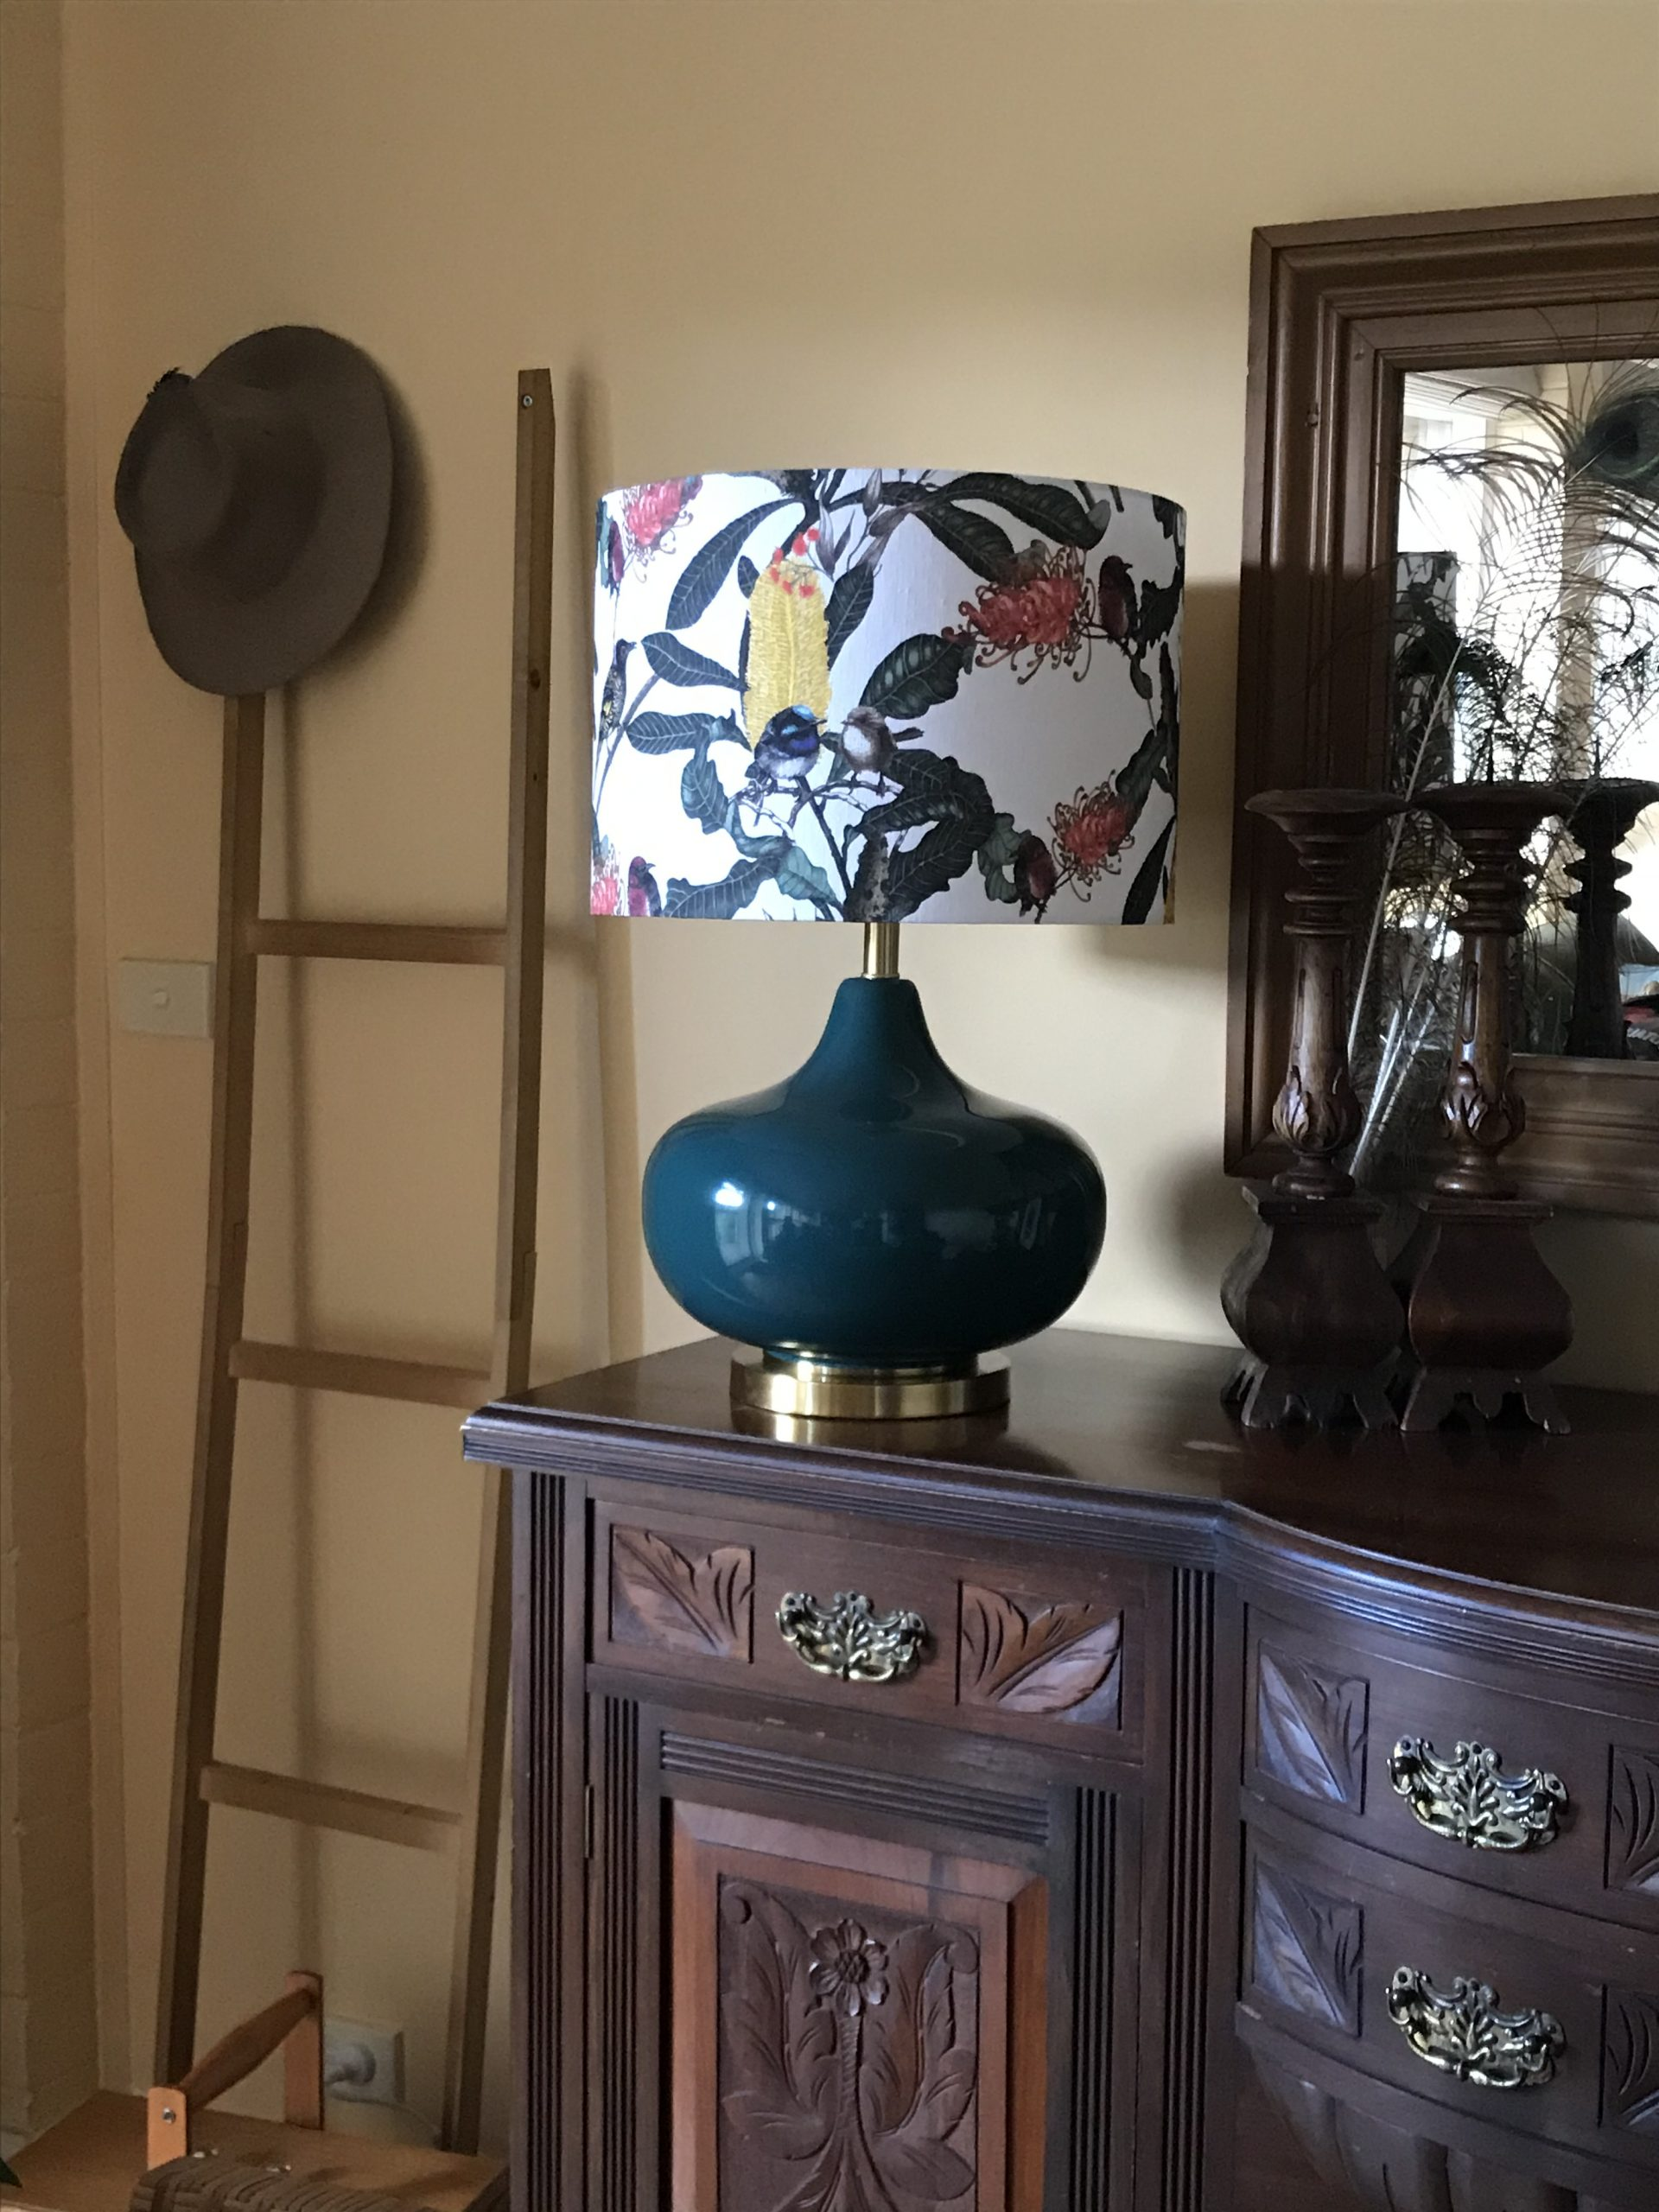 interior image showing lampshades by Green Room interiors with Banksai Medley linen.